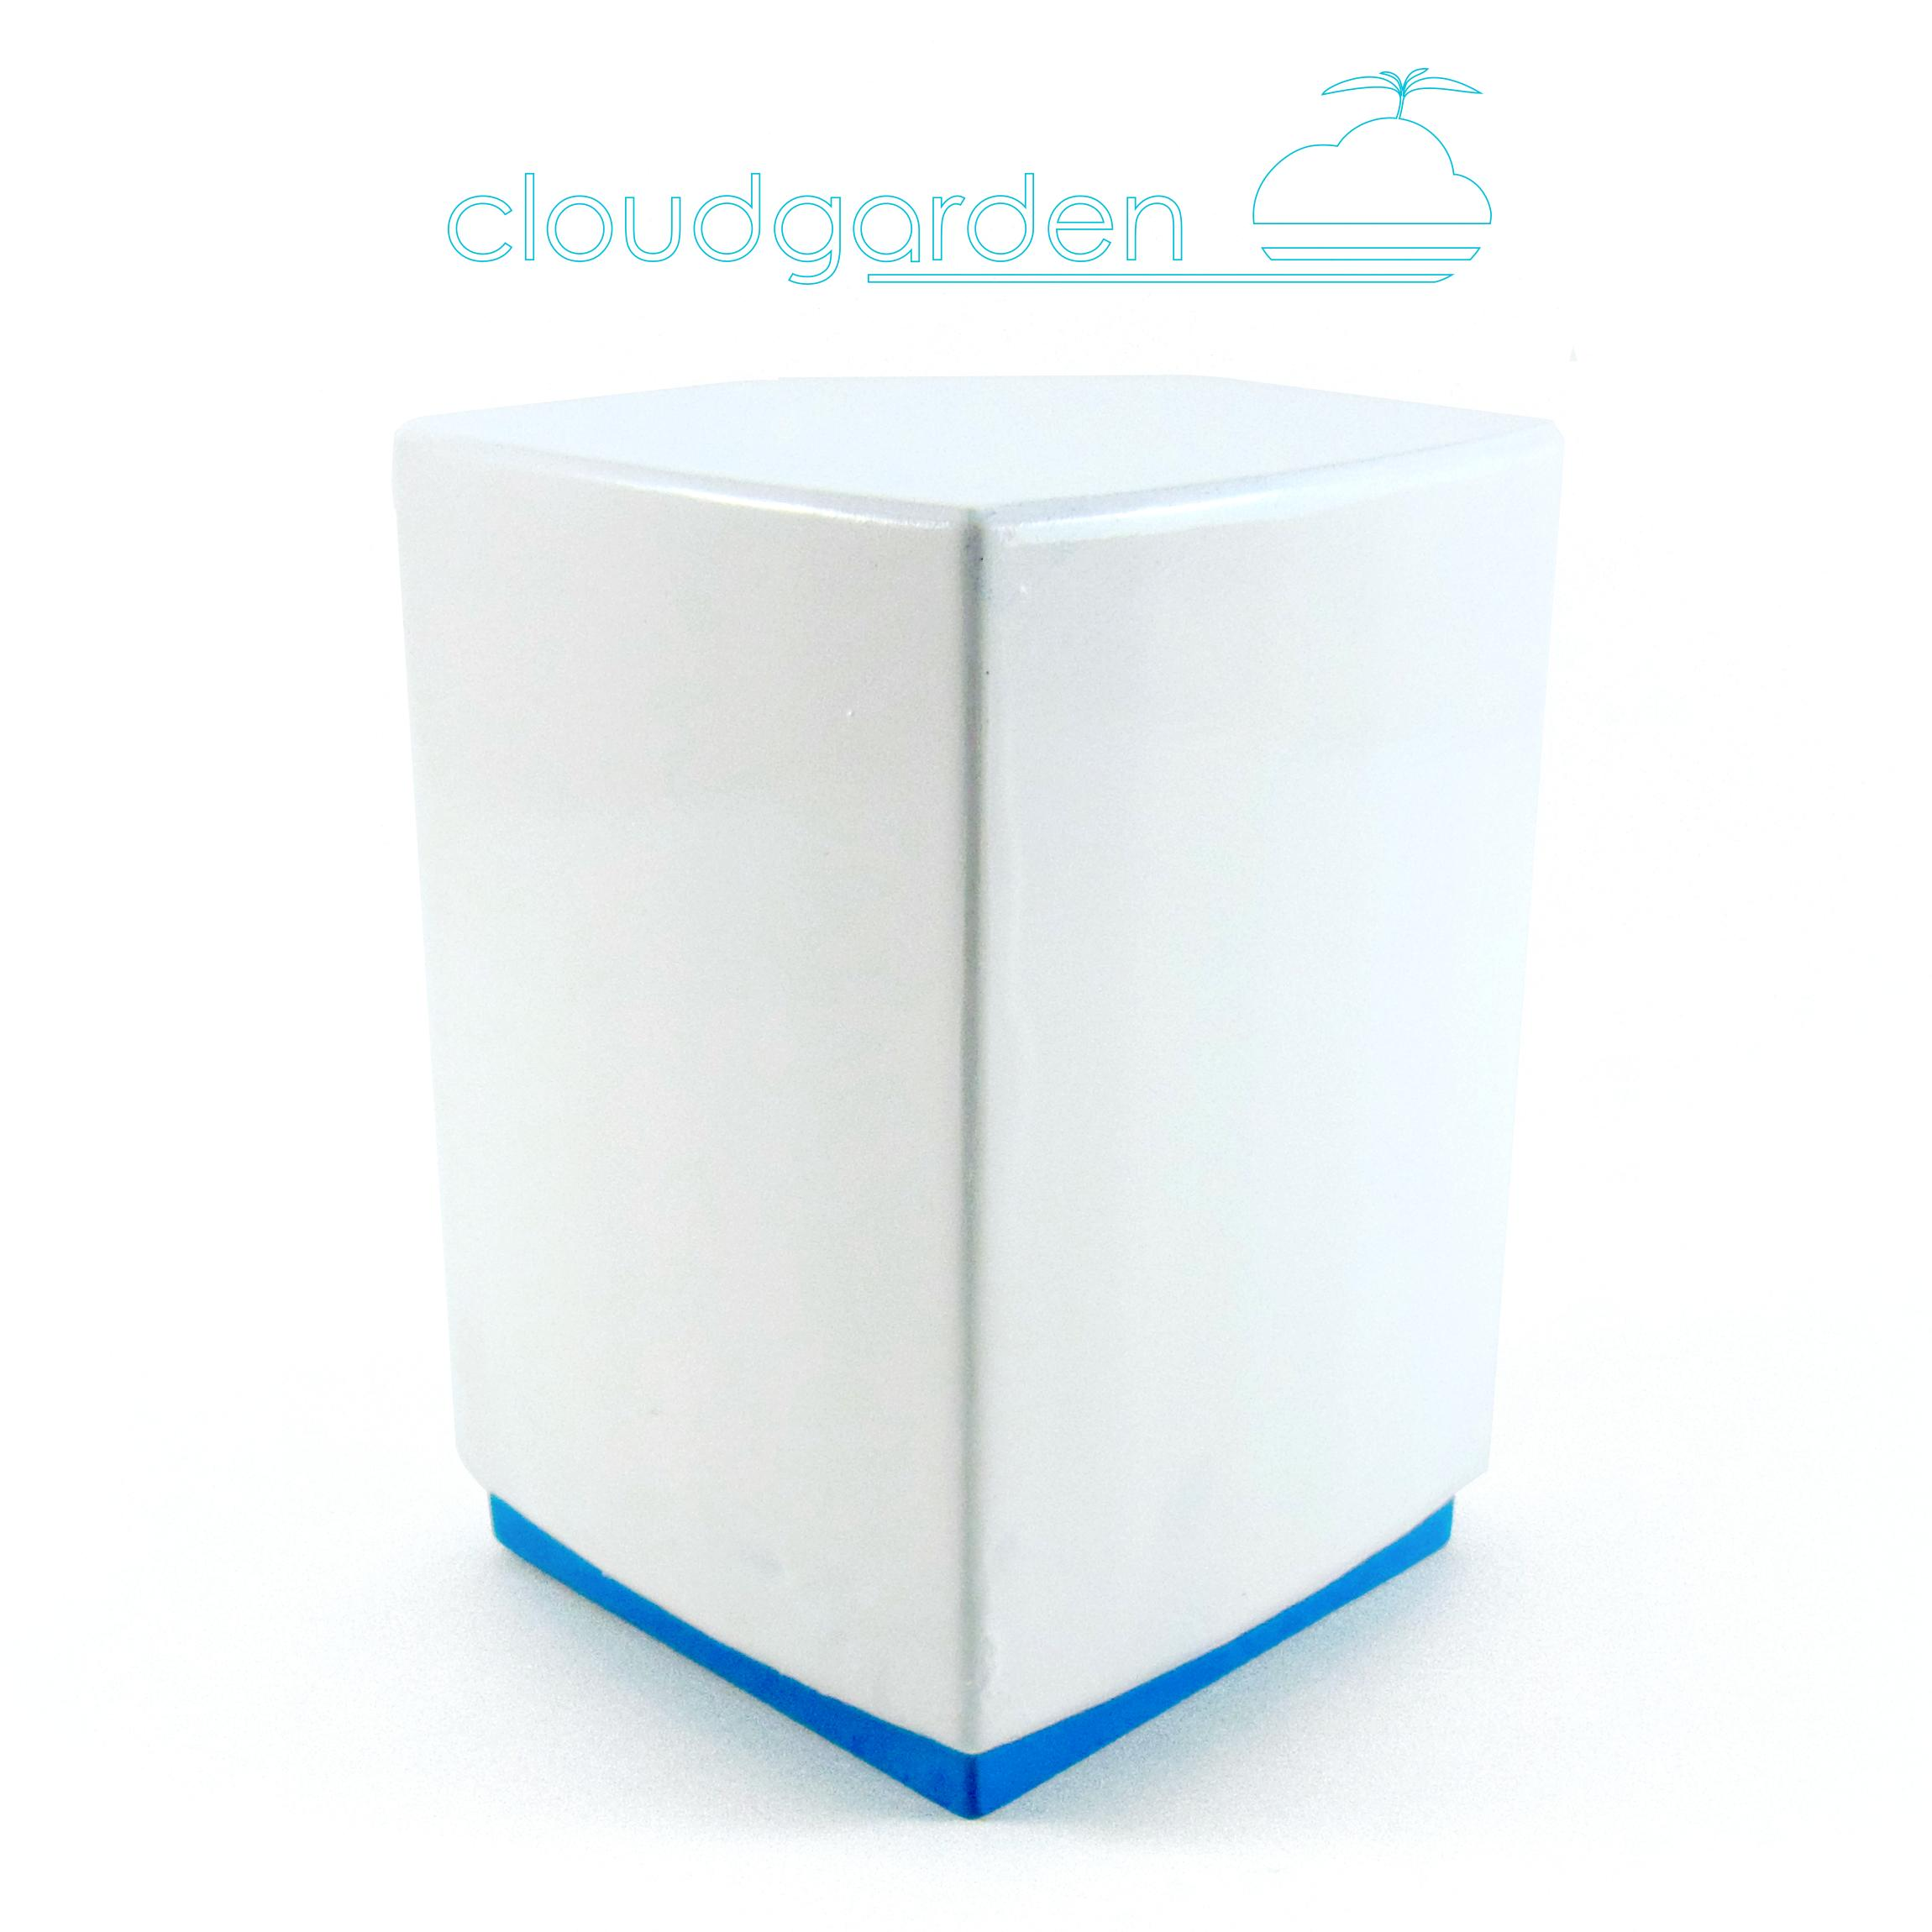 CloudGarden